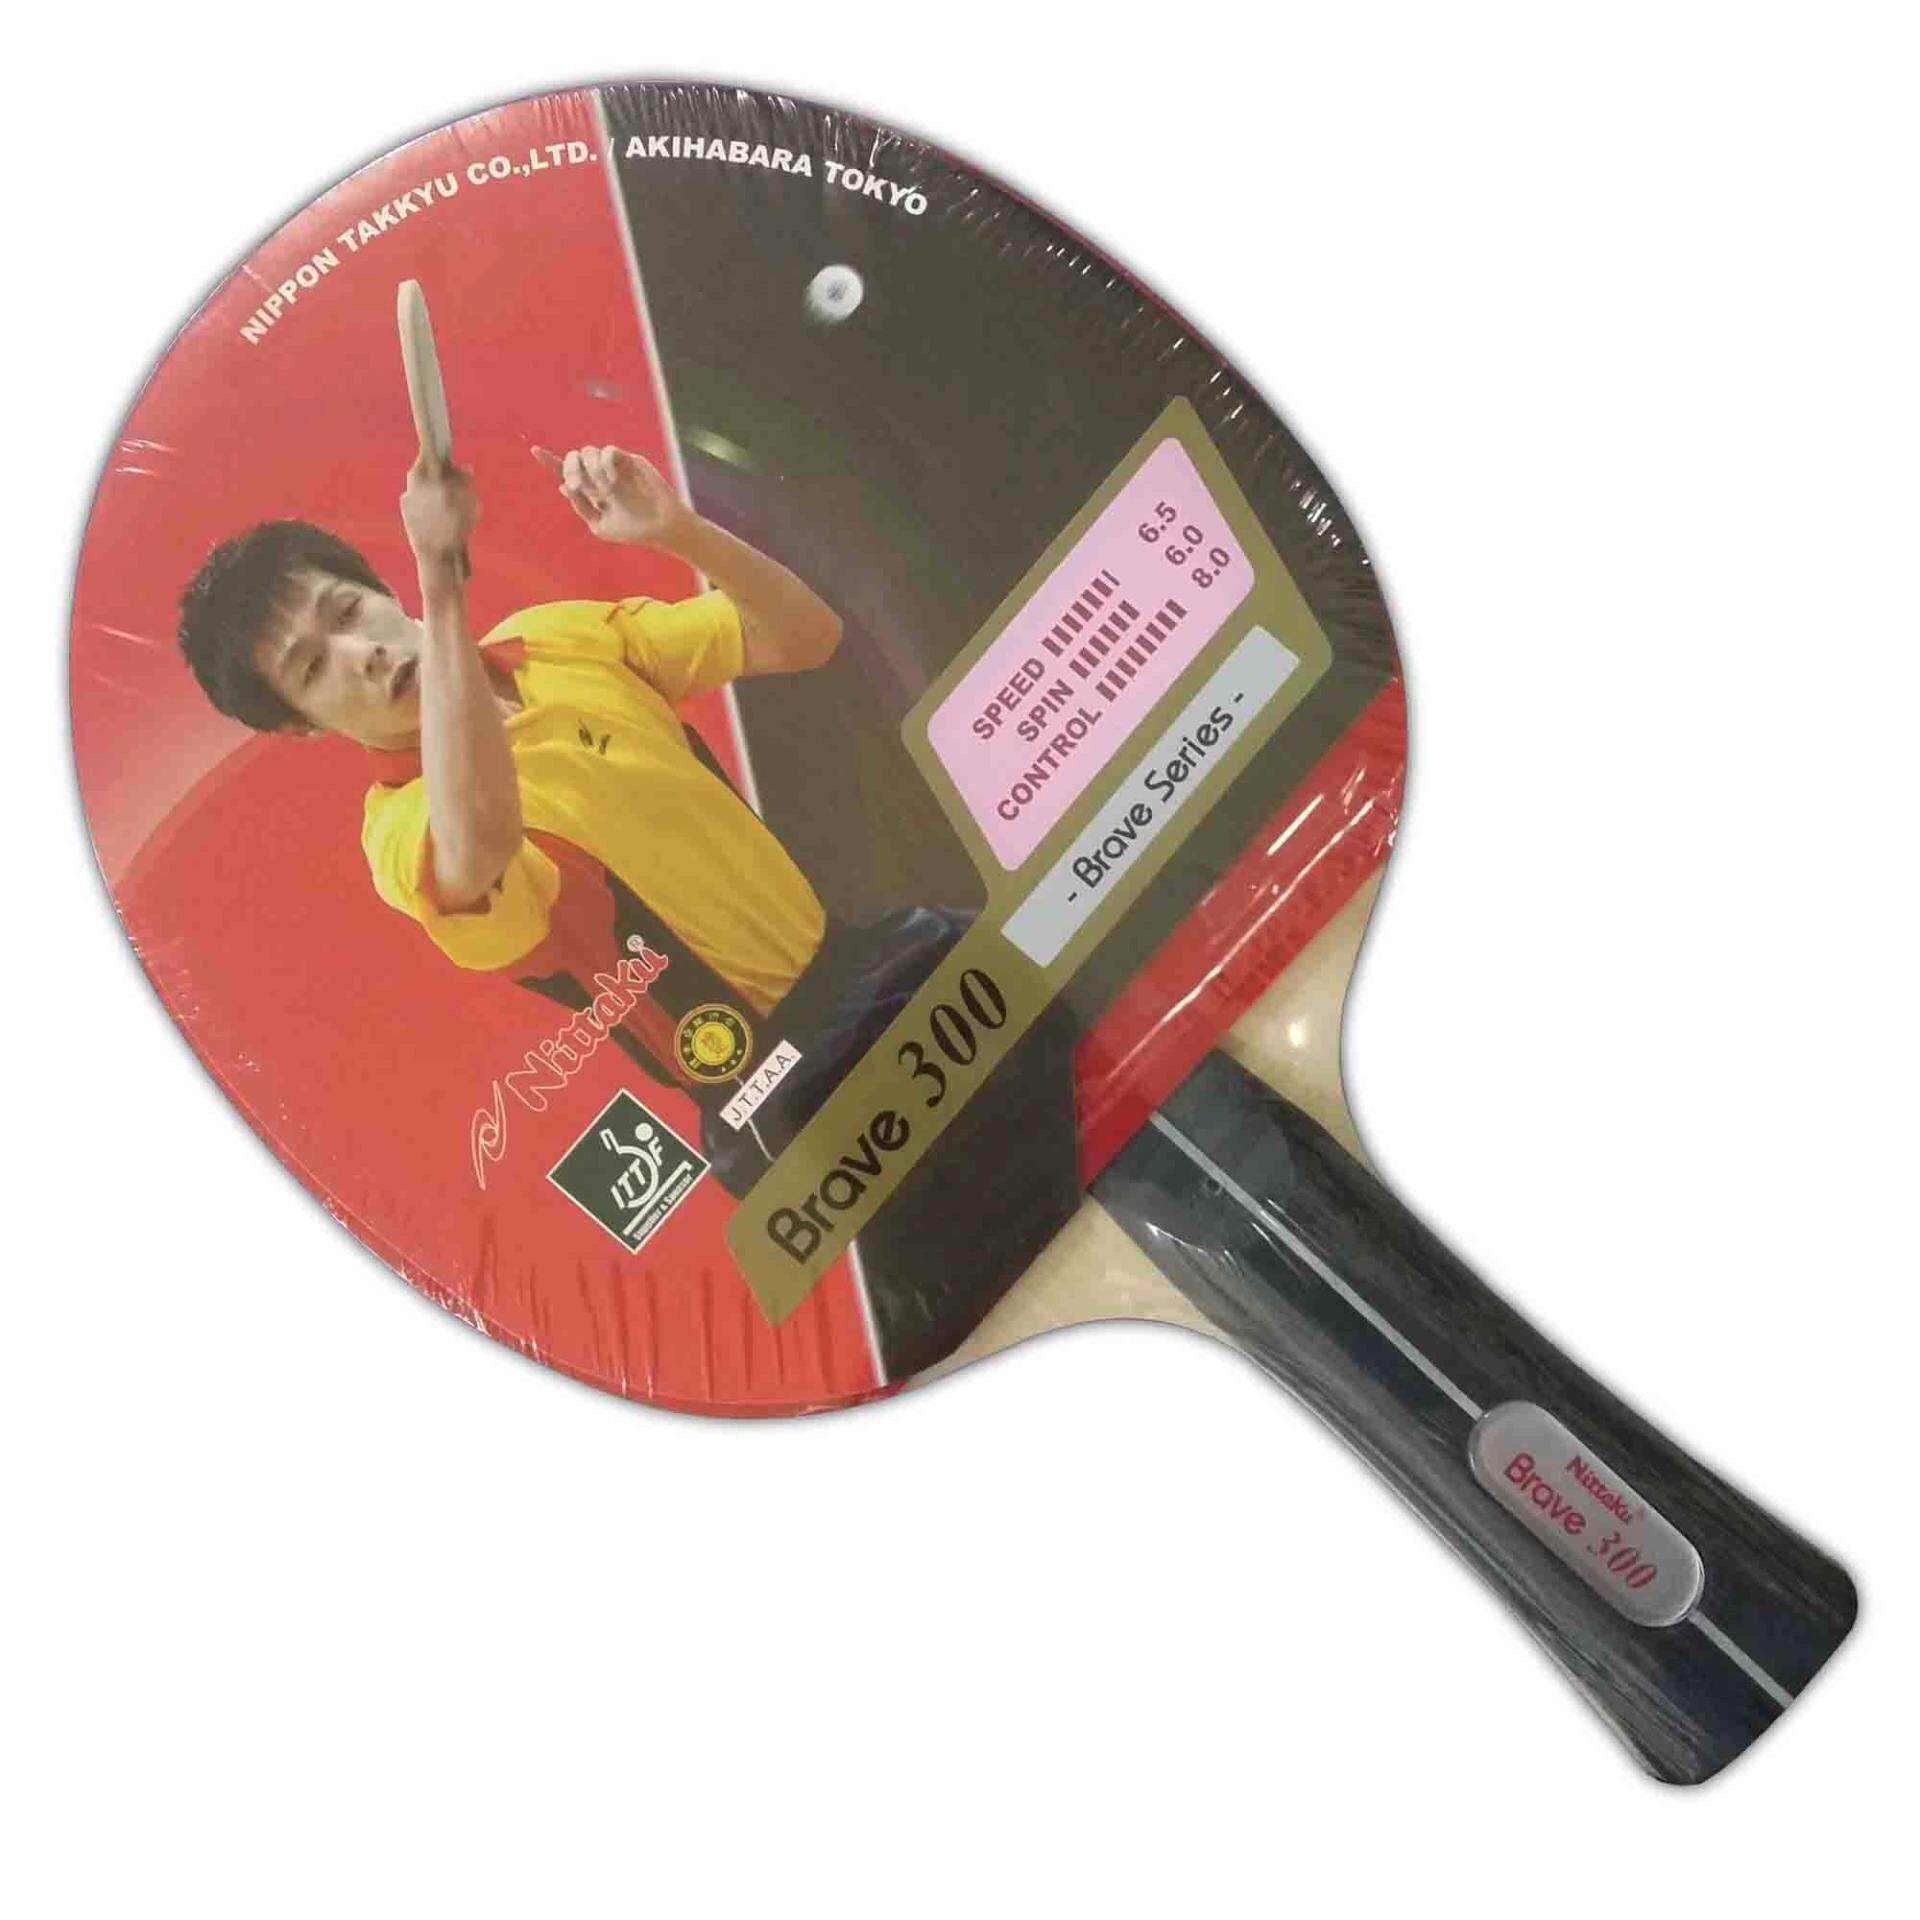 Nittaku Table tennis Bat Brave 300